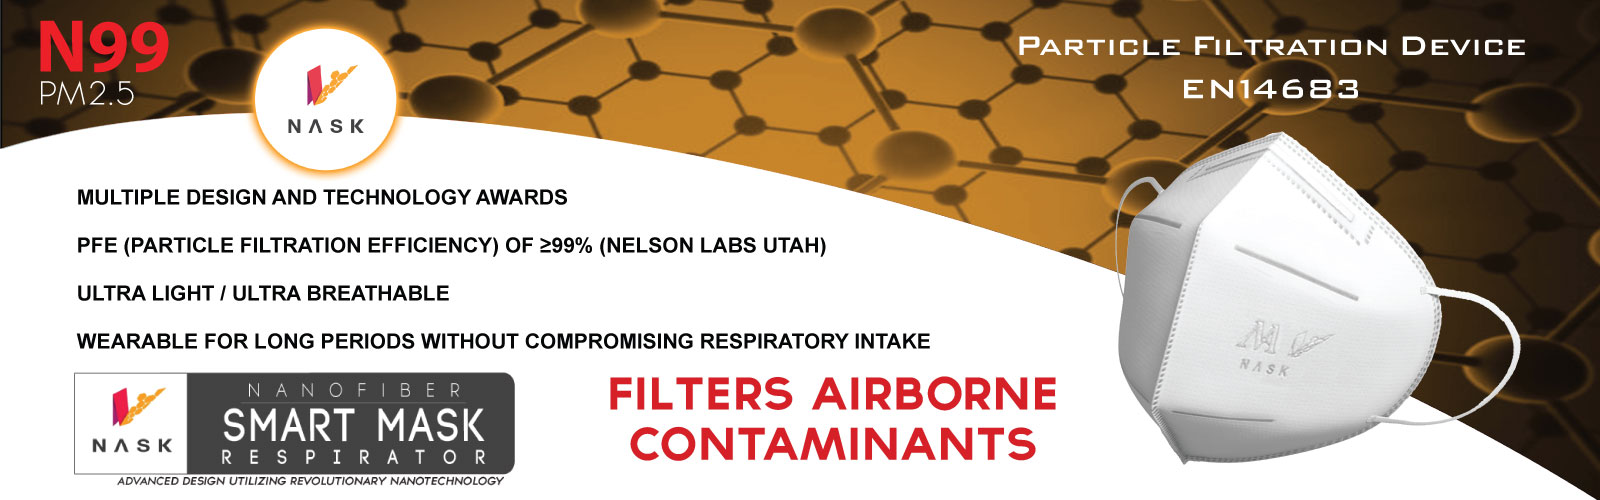 airborne-contaminants-nask-smart-mask